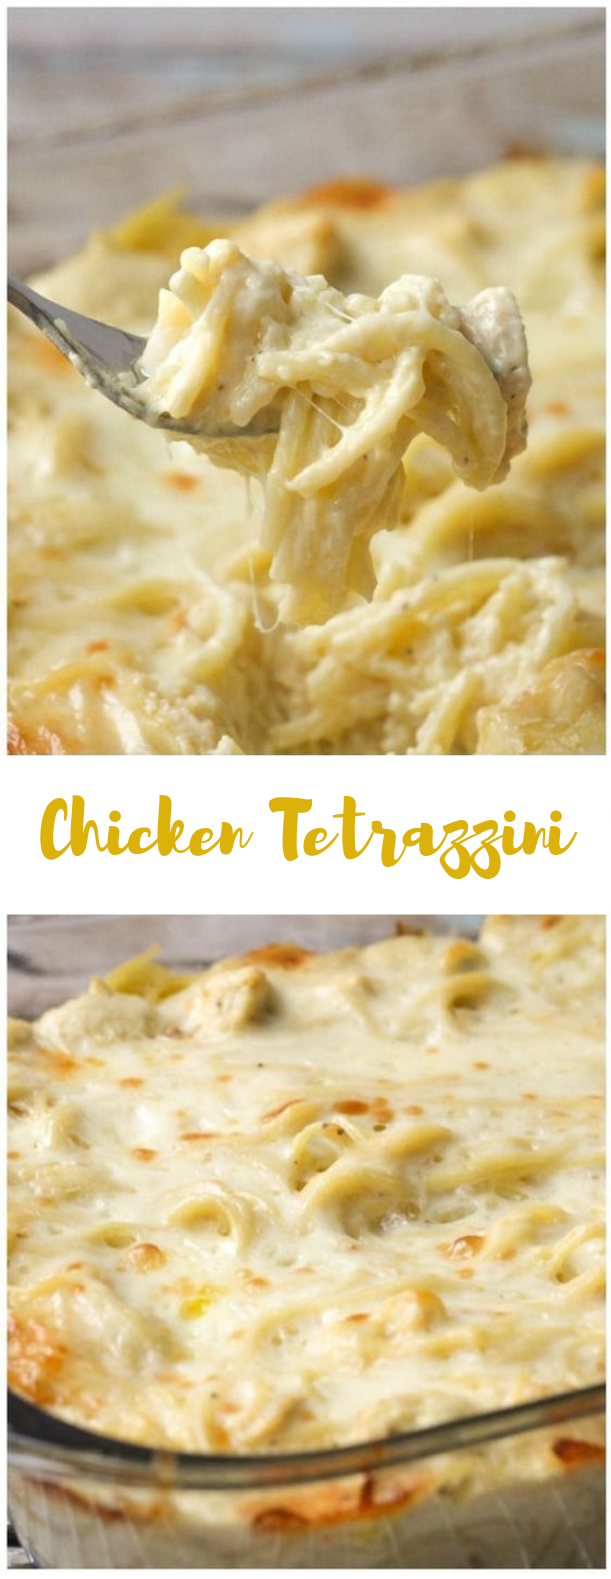 THE BEST CHICKEN TETRAZZINI #Dinner #EasyRecipe